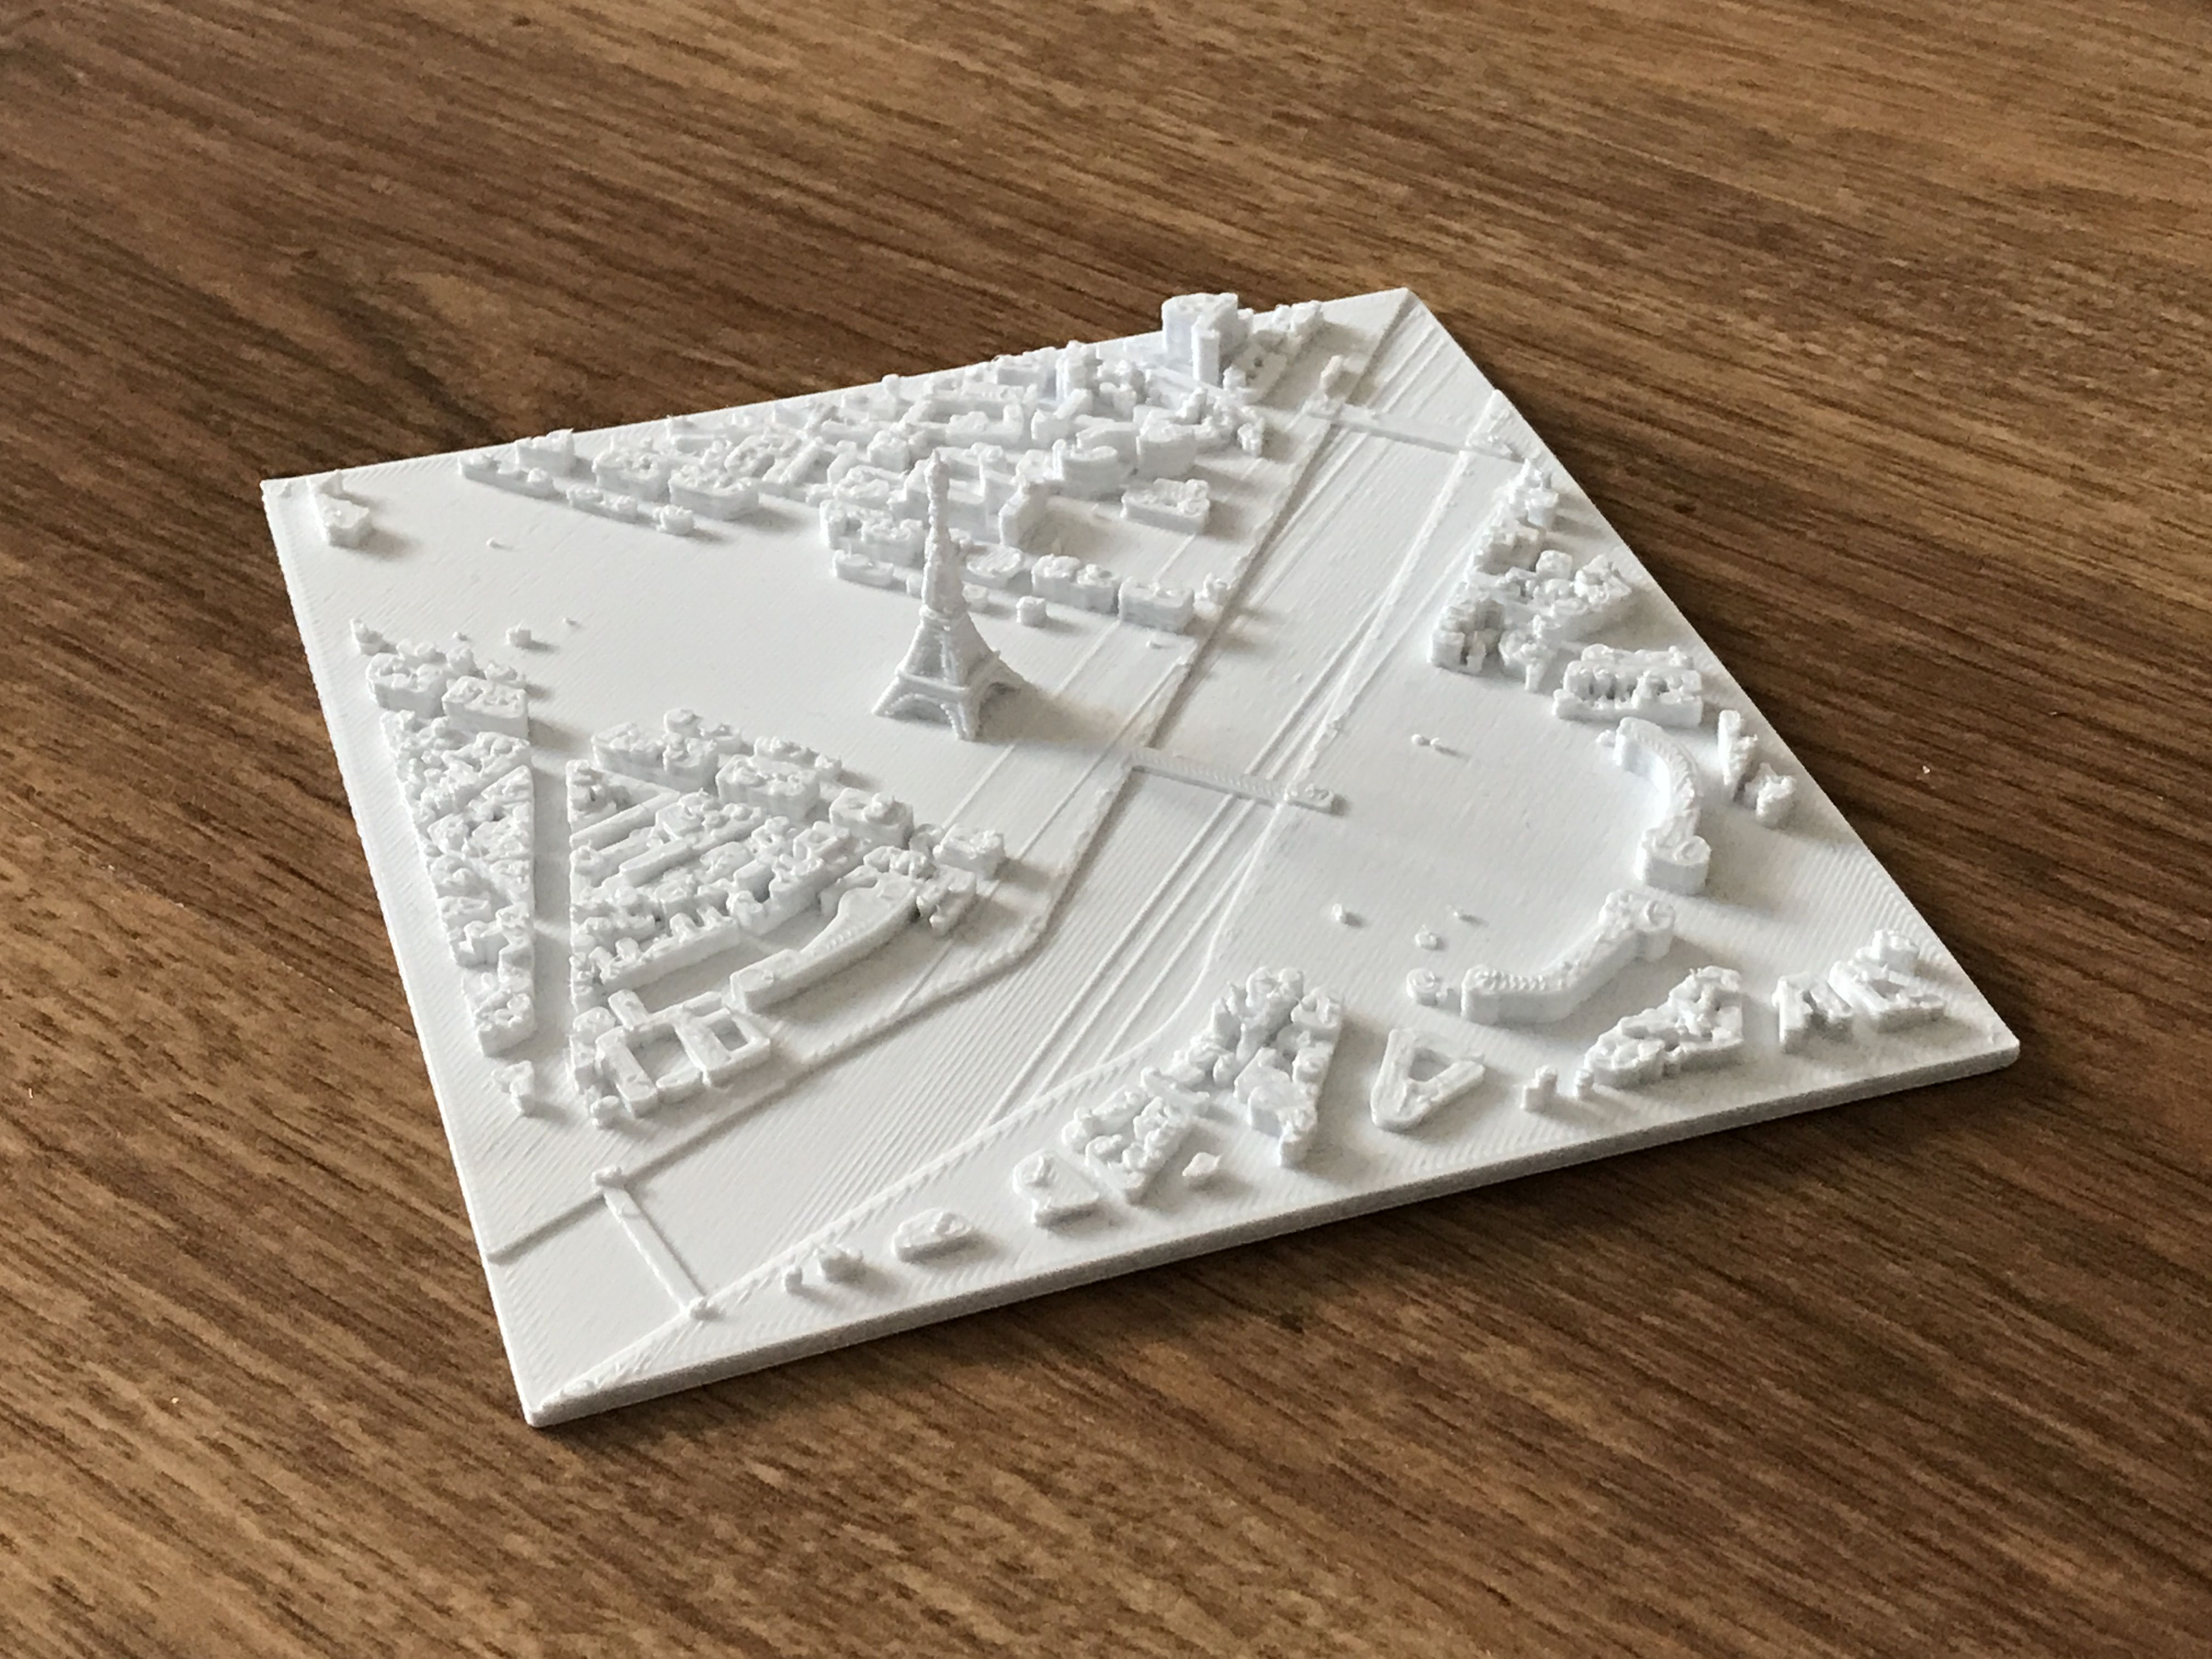 IMG_6098.jpg Download STL file Eiffel Tower - Paris City • 3D printing object, mithreed